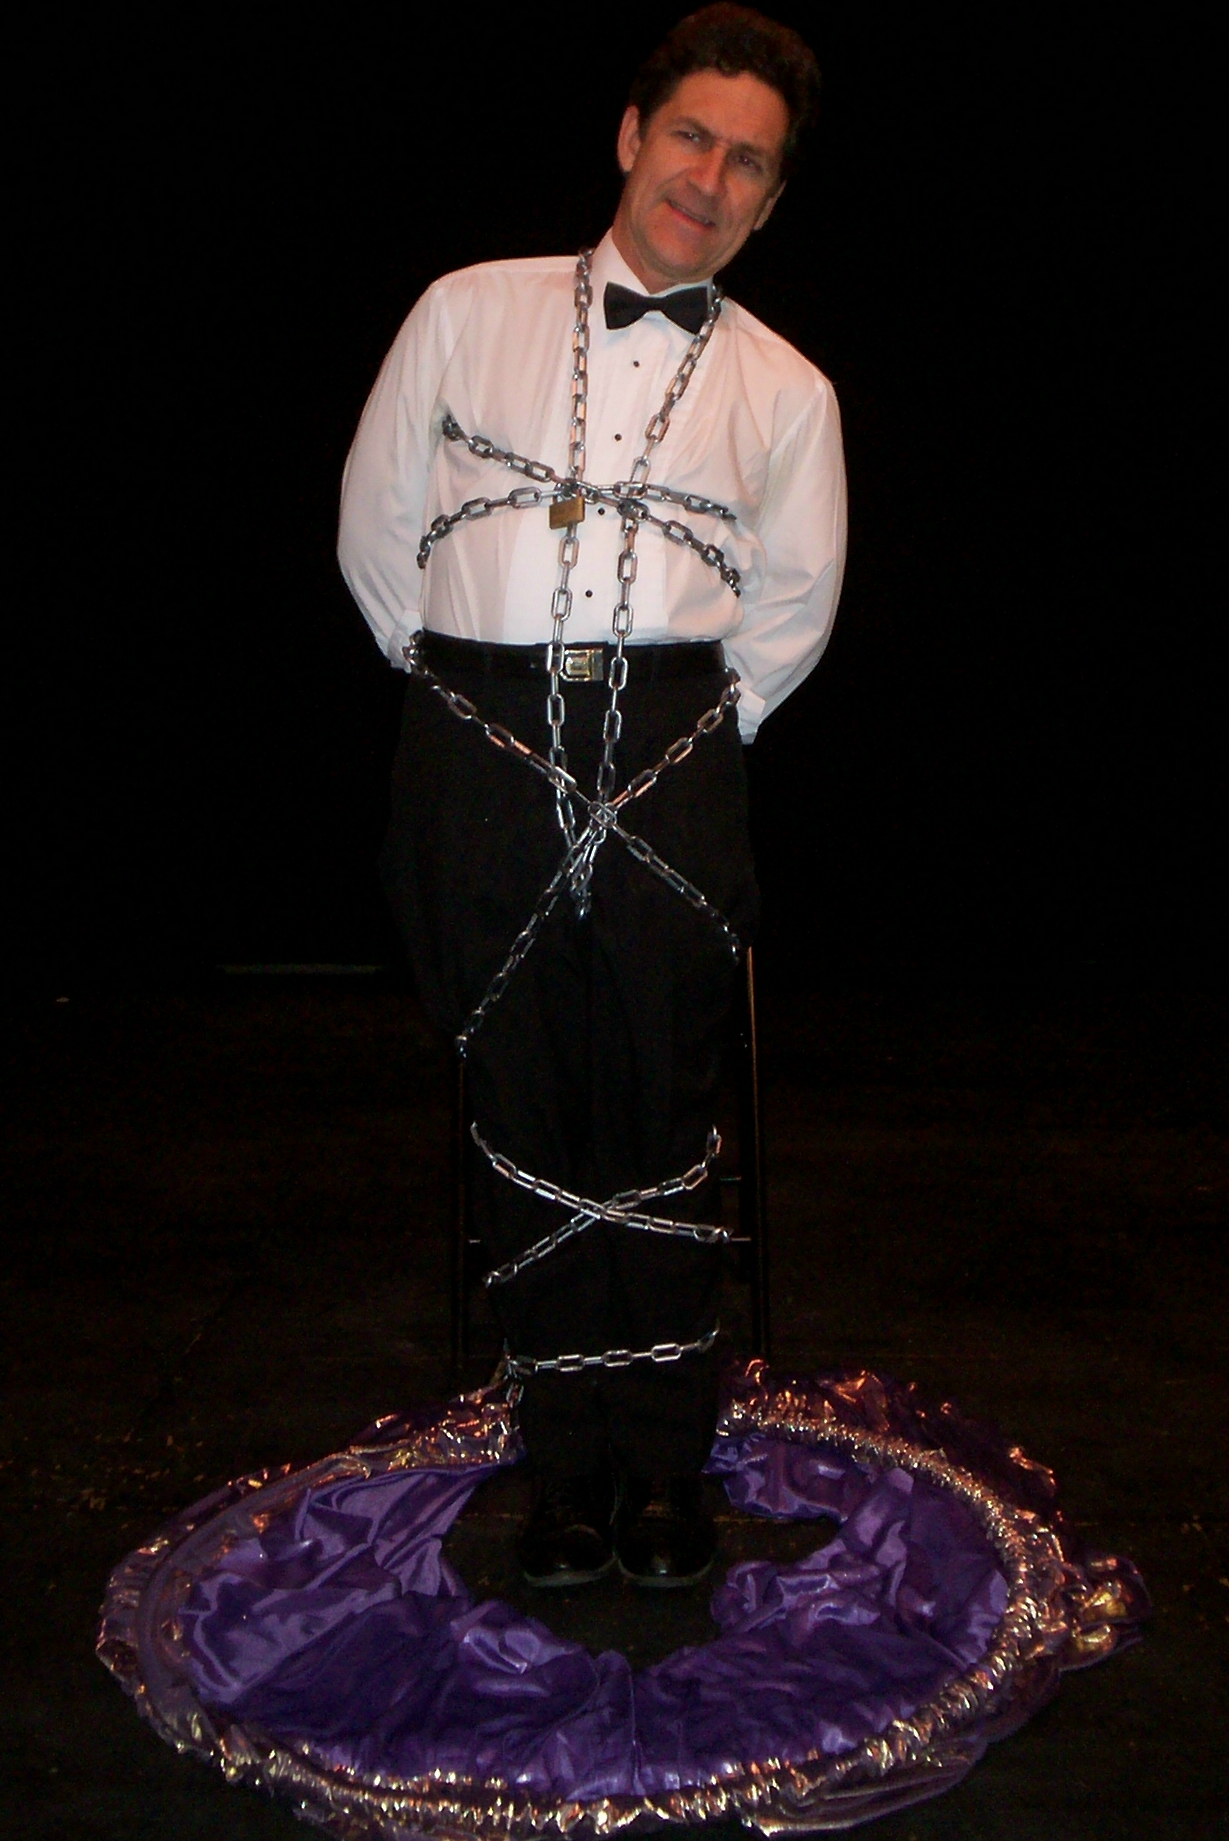 photo of magician wrapped in chains